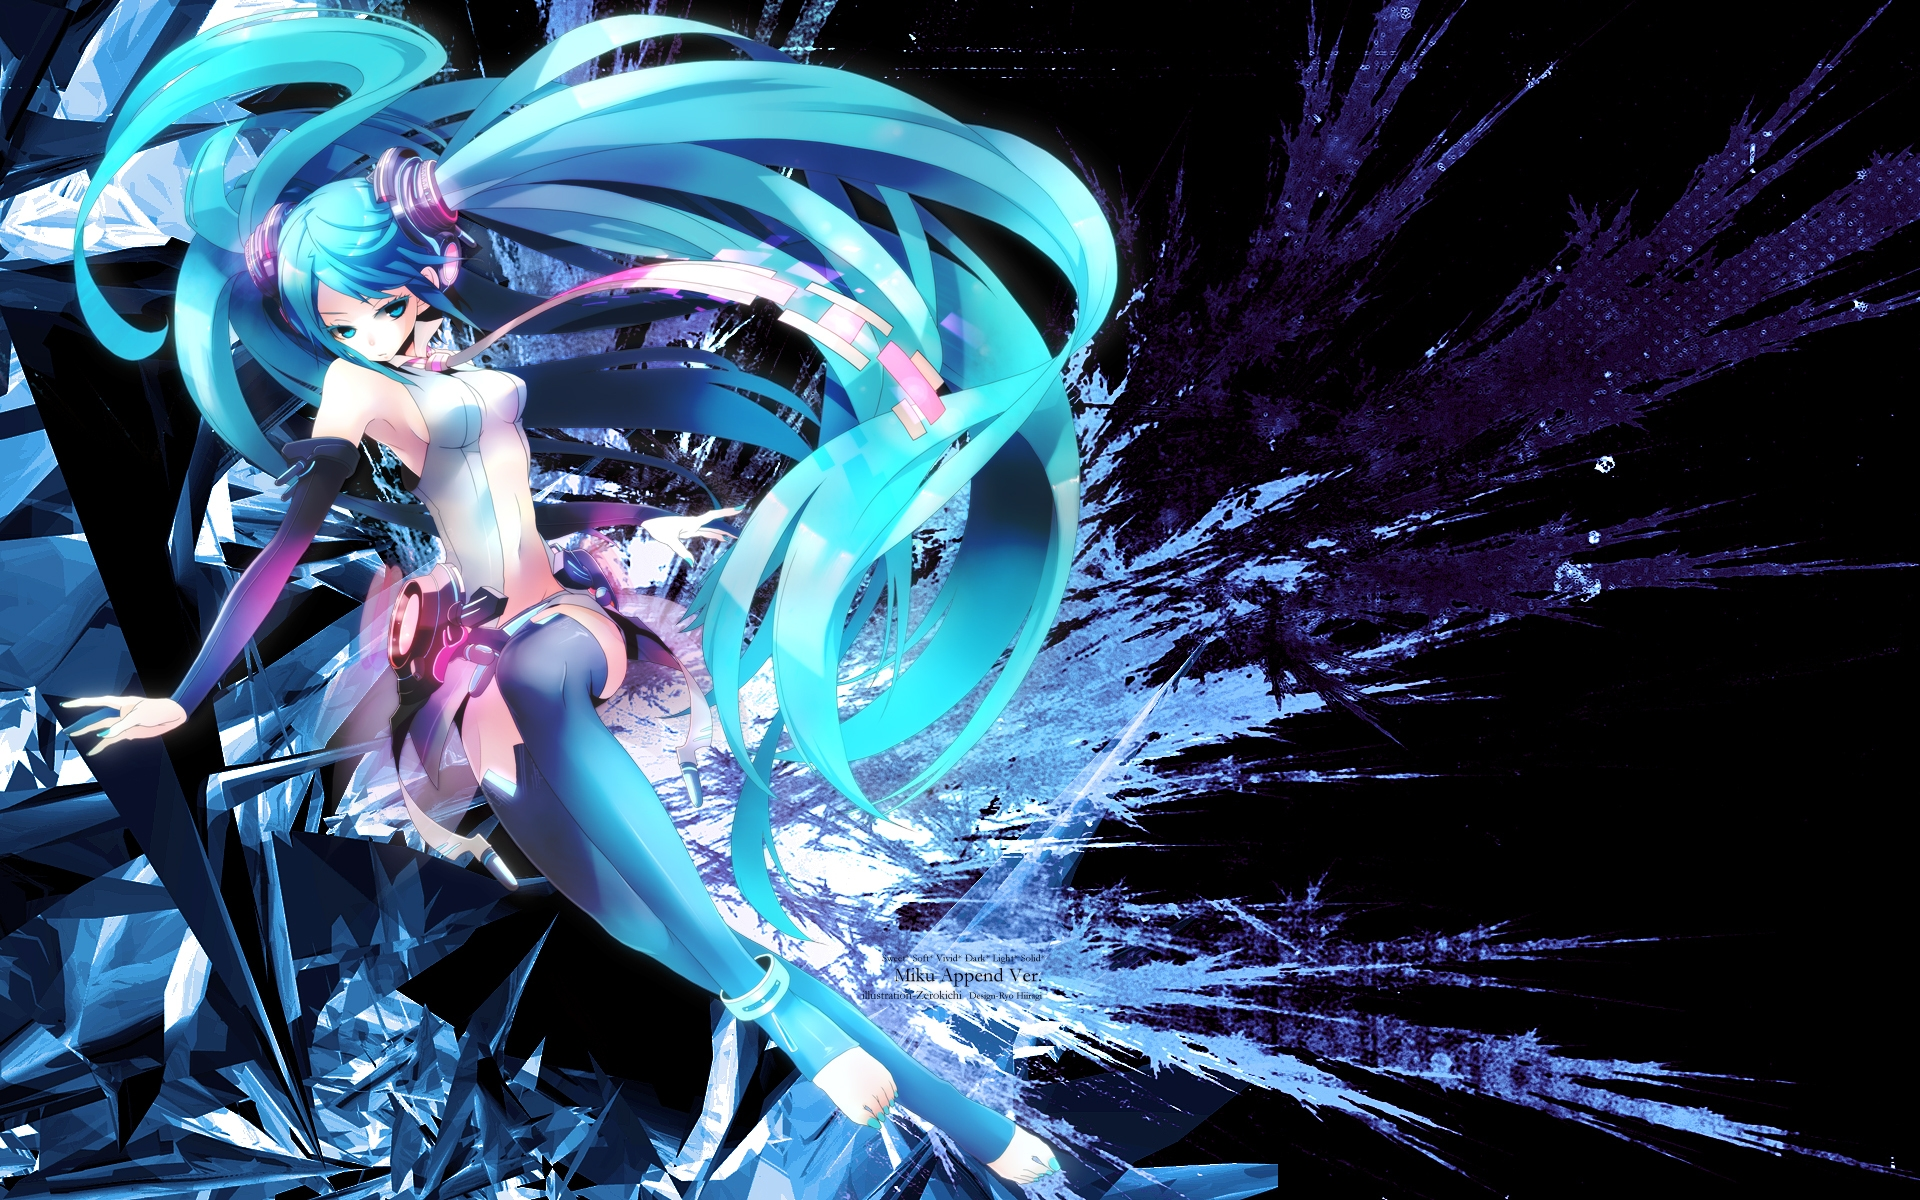 Free download Download Hatsune Miku Miku Hatsune Wallpaper